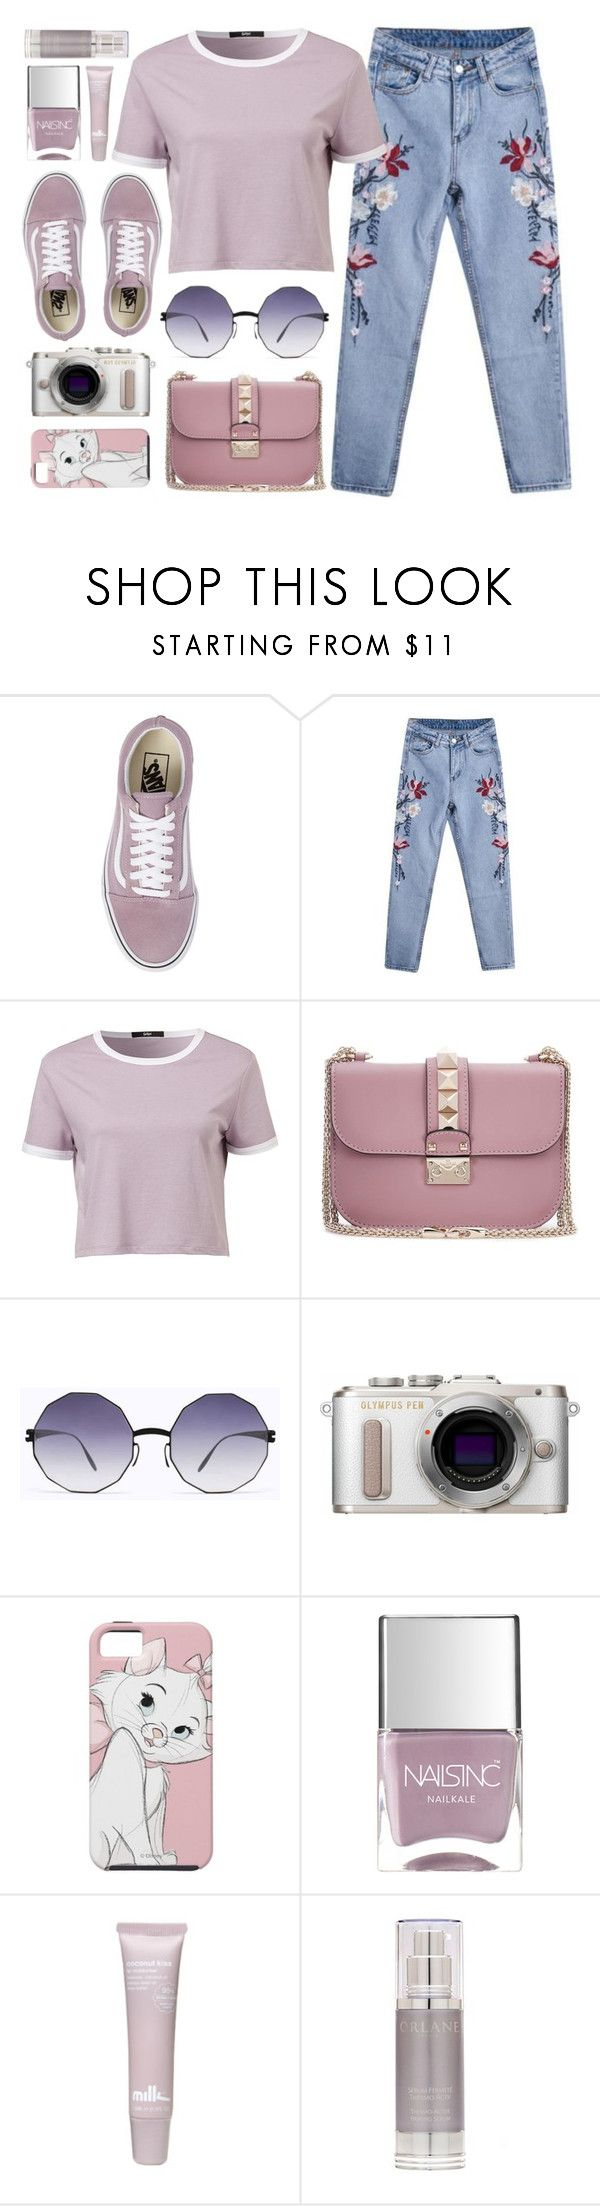 """Candy"" by smartbuyglasses-uk ❤ liked on Polyvore featuring Vans, Valentino, Mykita, PL8, Nails Inc., Orlane, Pink and purple"